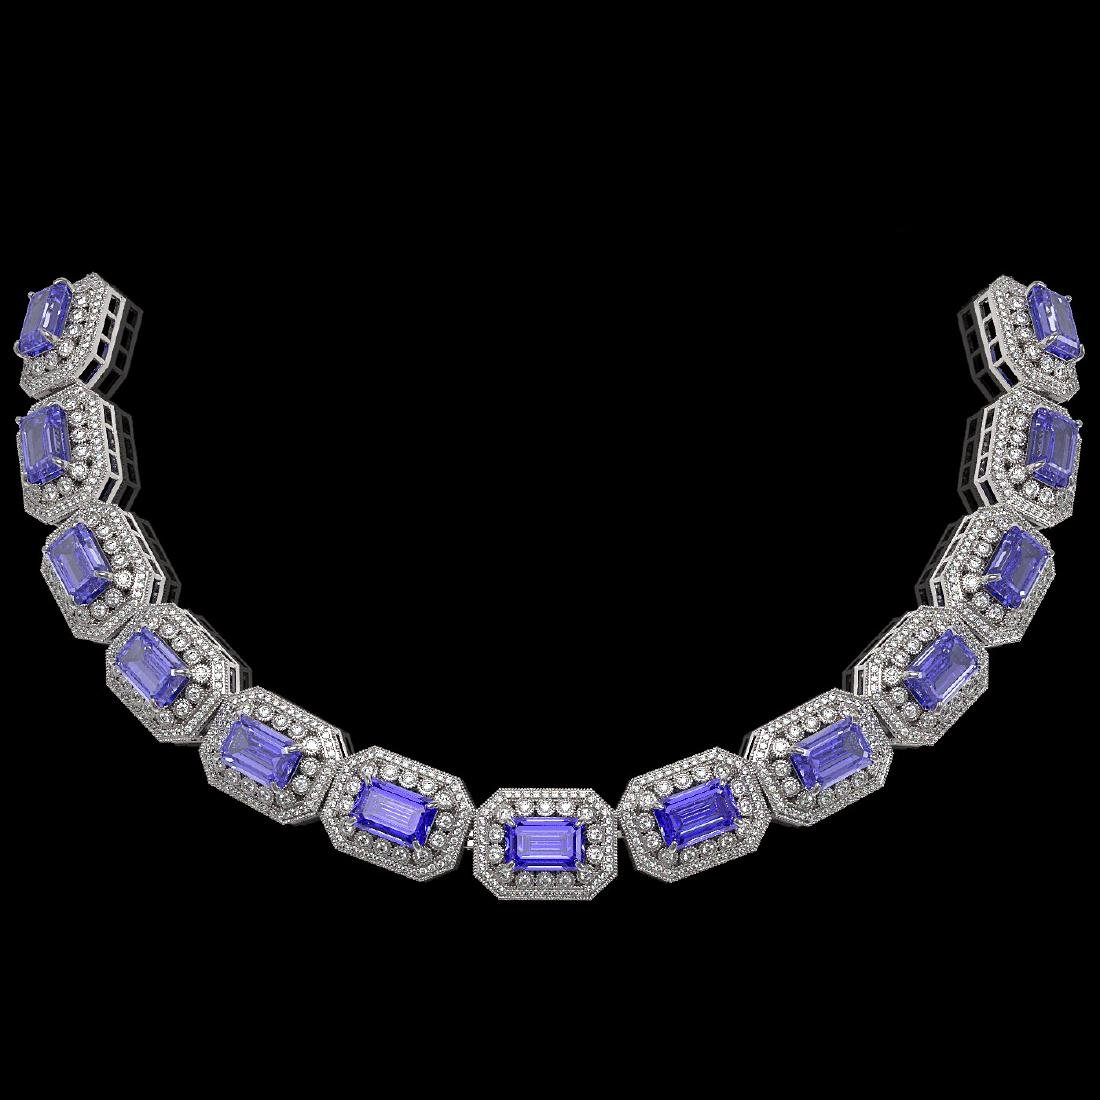 50.67 ctw Tanzanite & Diamond Bracelet 14K White Gold -